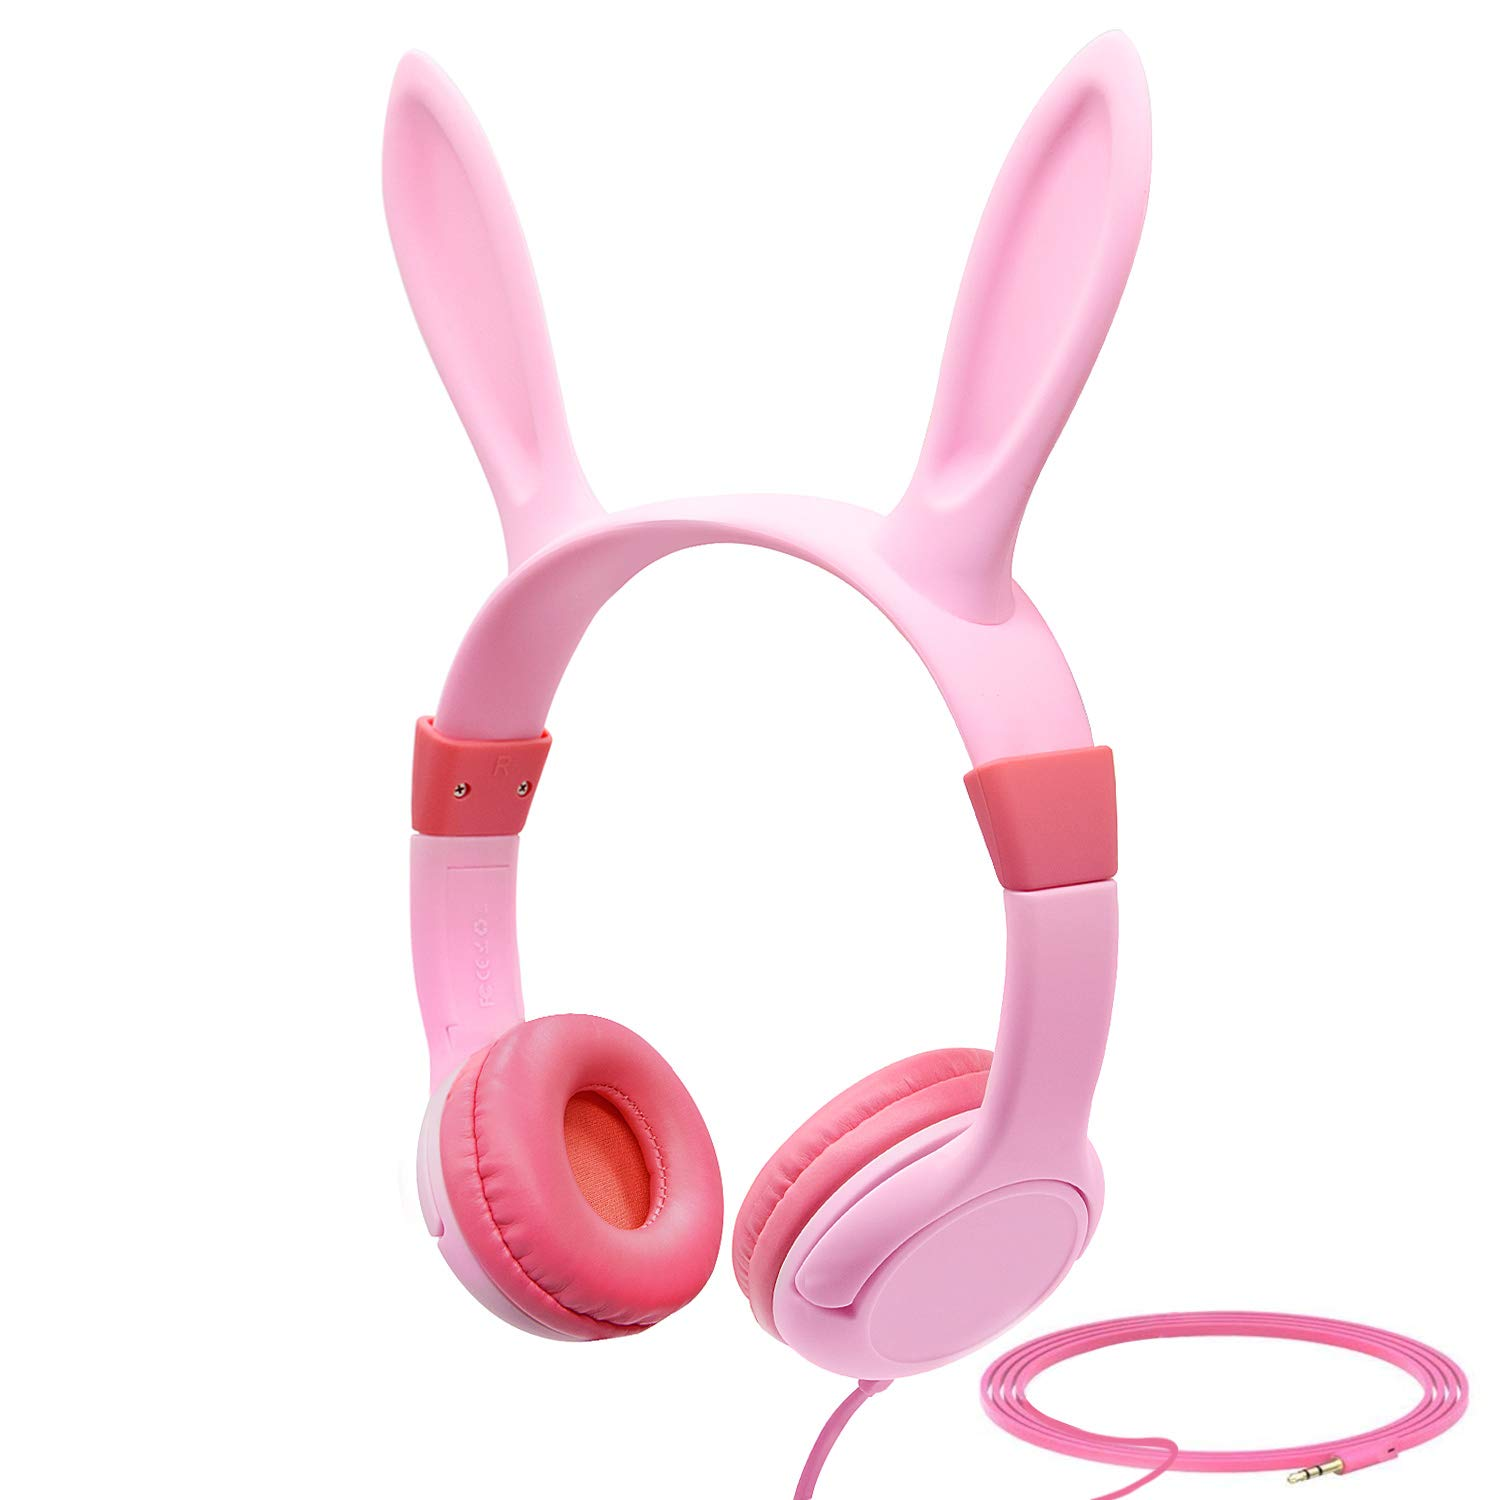 Esonstyle Kids Headphones Update Music Sharing Function,Wired On Ear Headphones with Bunny/Rabbit Ears,85dB Volume Limited,Food Grade Silicone,3.5mm Jack for Children Baby,Pink (Rabbit Ears -Pink)